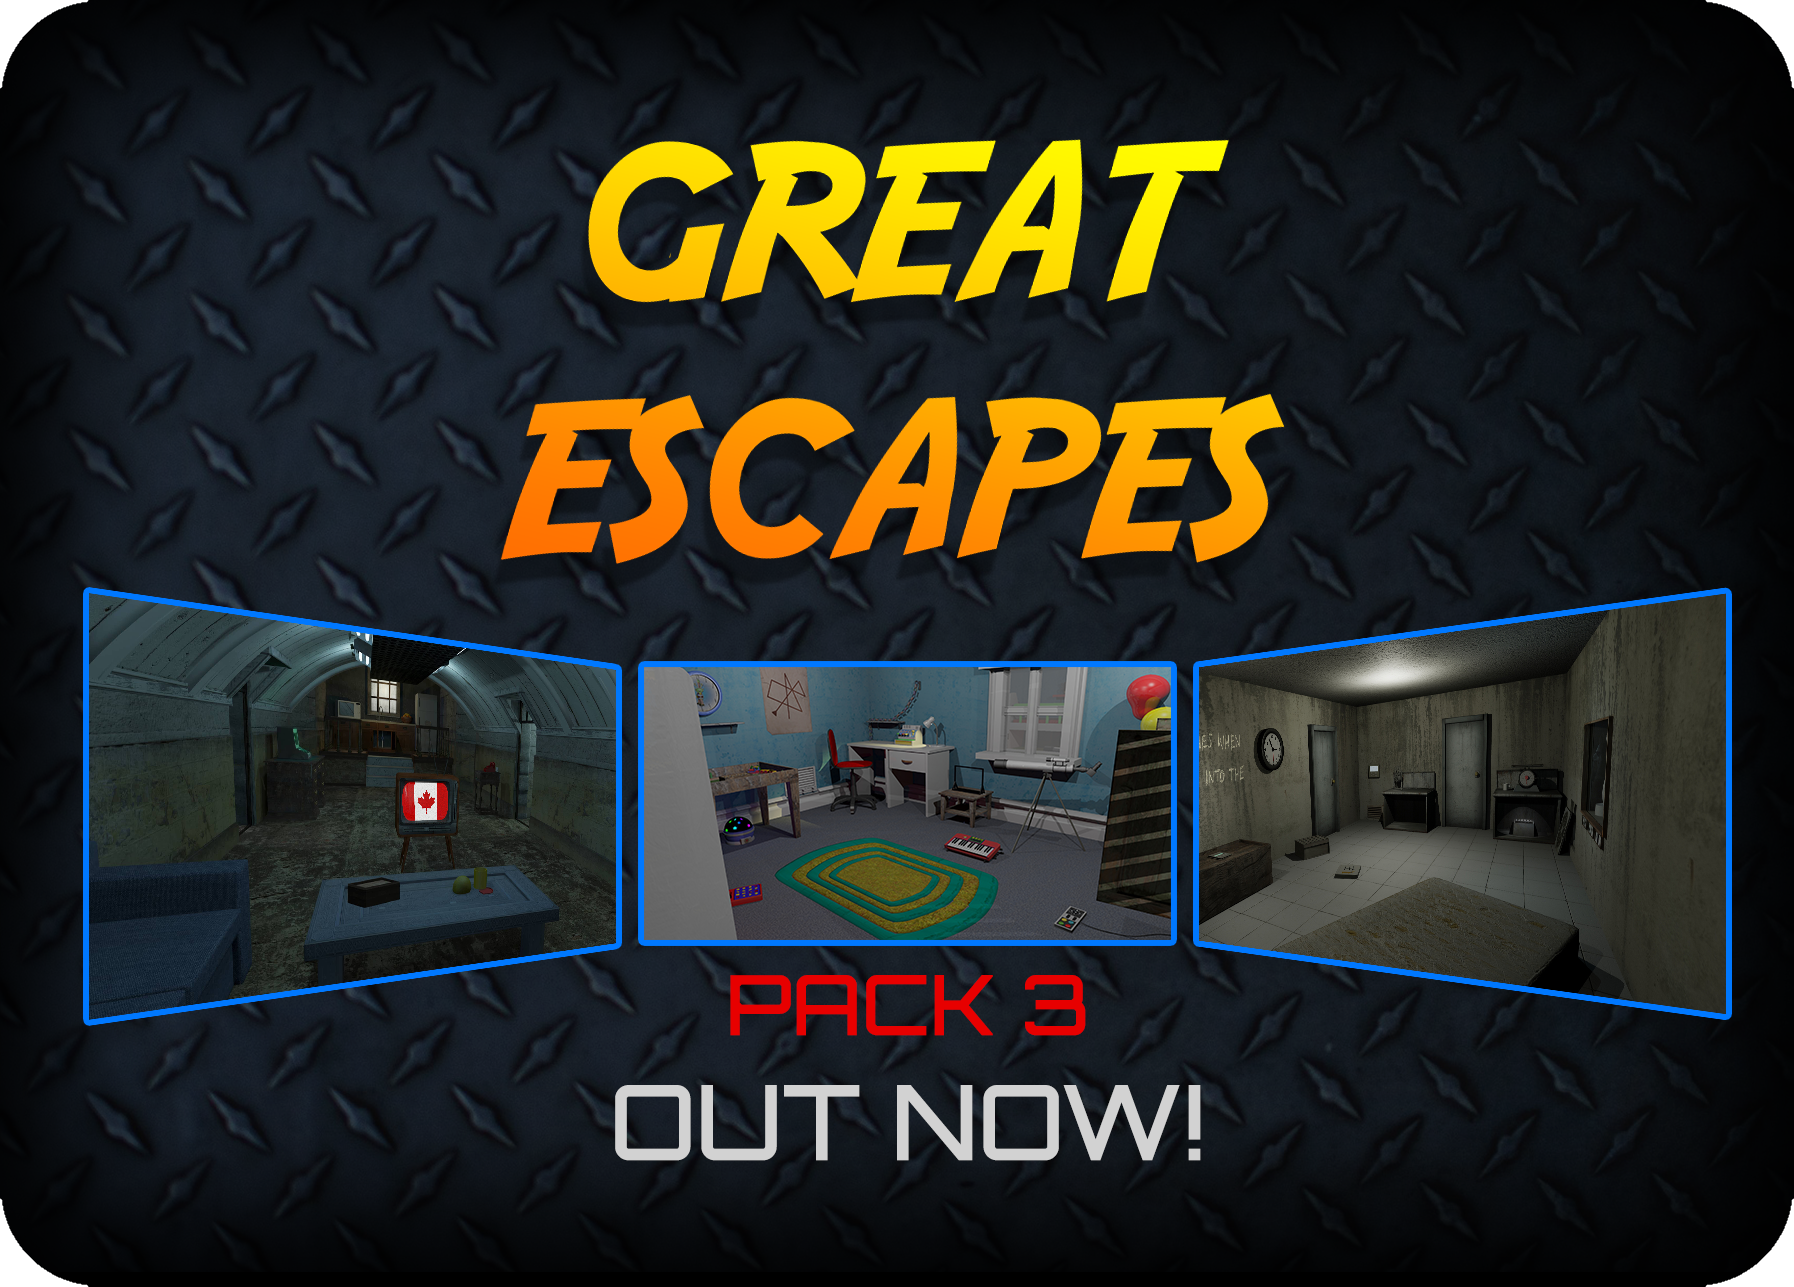 Glitch Classics pack added to Great Escapes